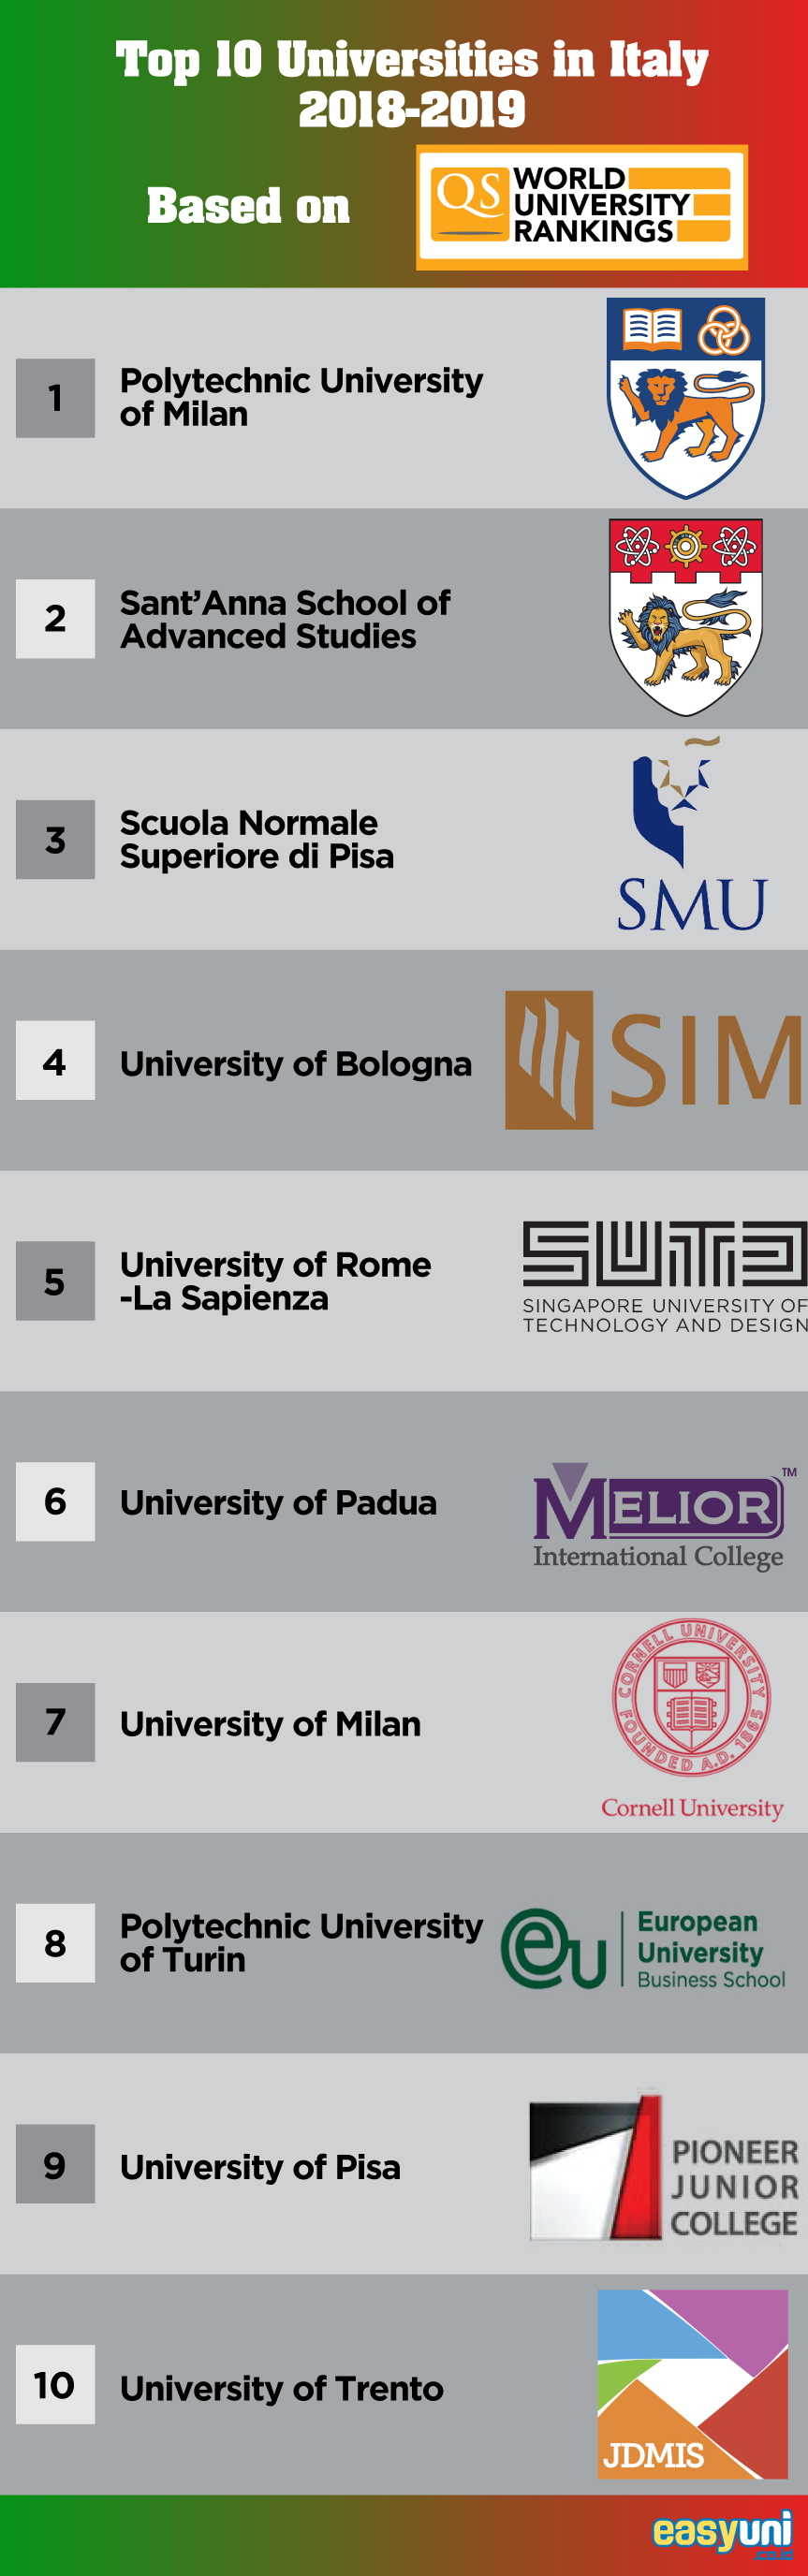 Top 10 Universities in Italy 2019